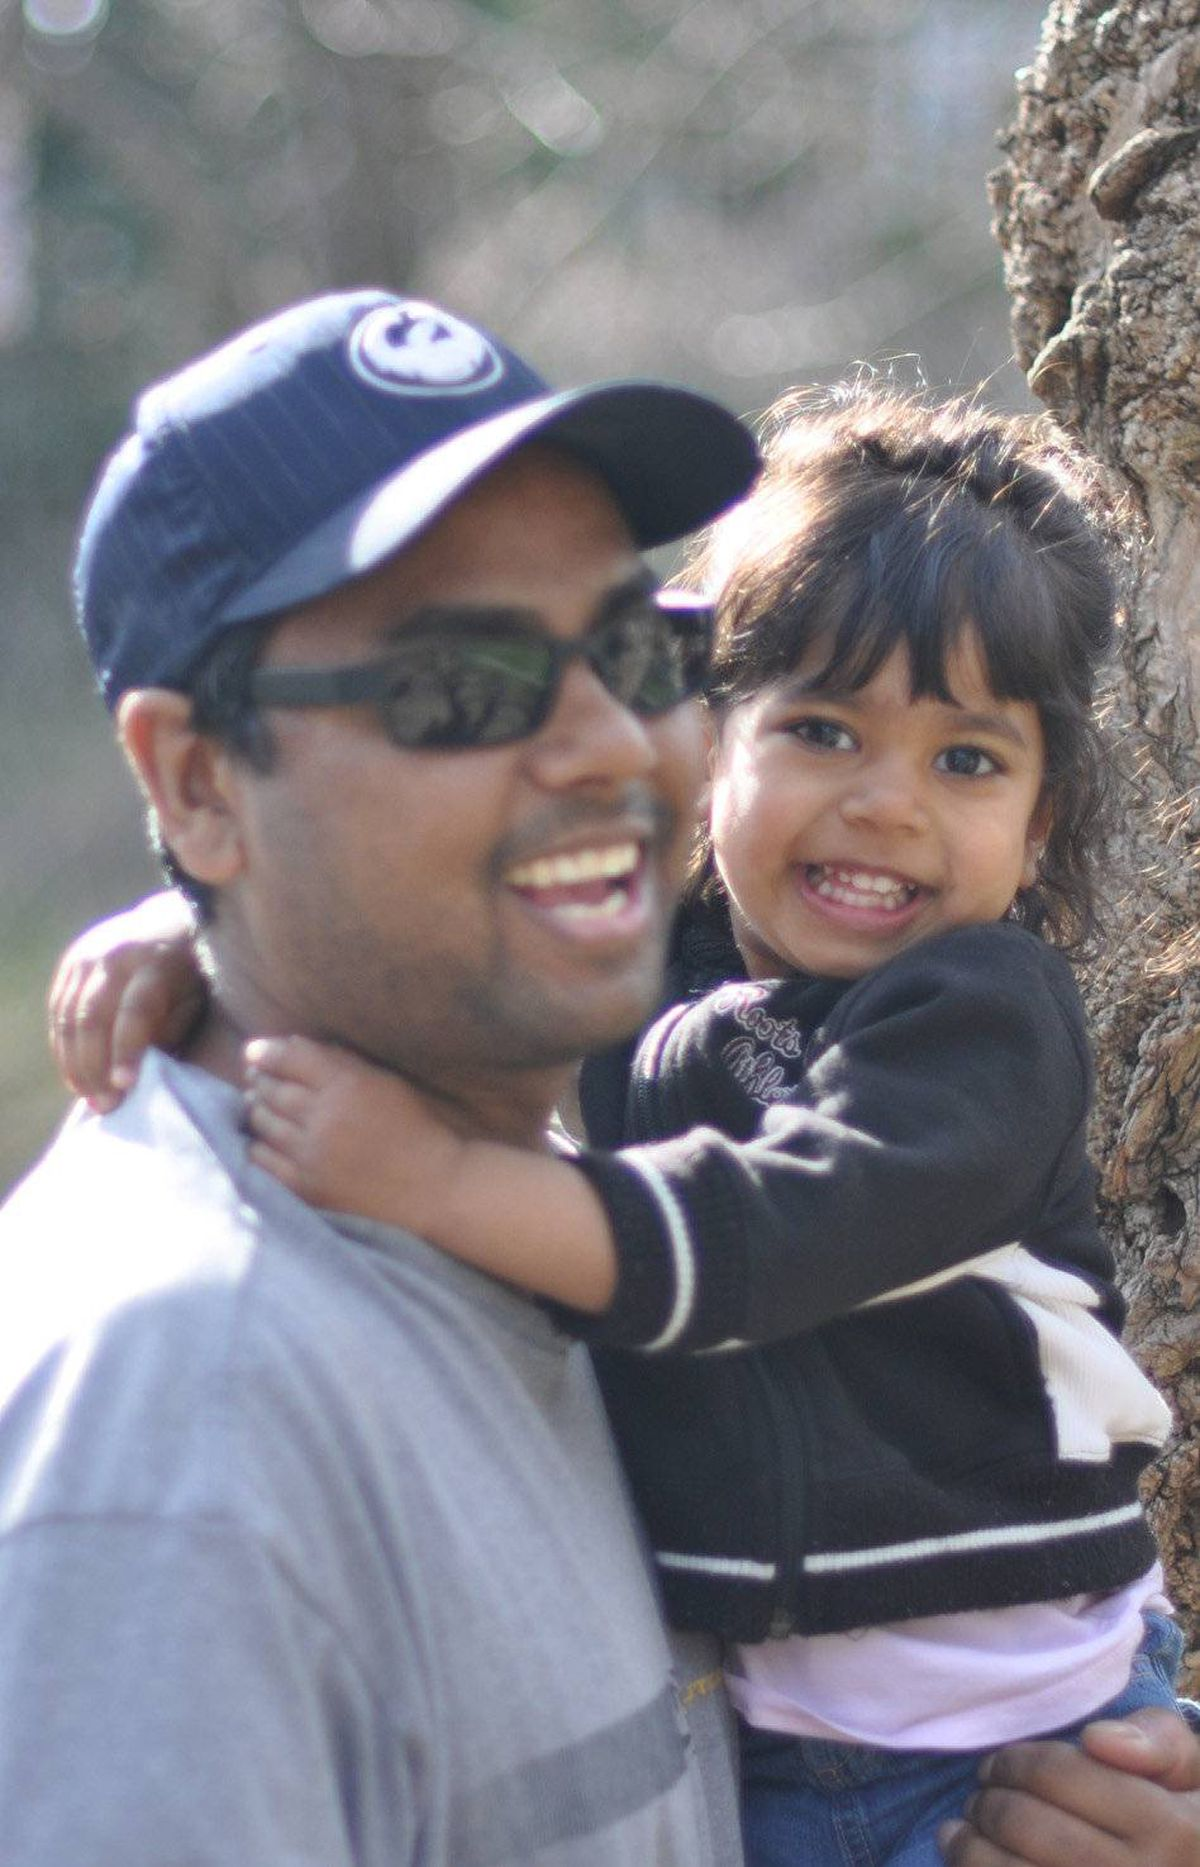 "Here's Eshana and her Dad last month (May 2011) hanging out in the Beaches. She loves the sights and sounds of being outside. We hope she always enjoys nature and snuggling with her ""Dada""."